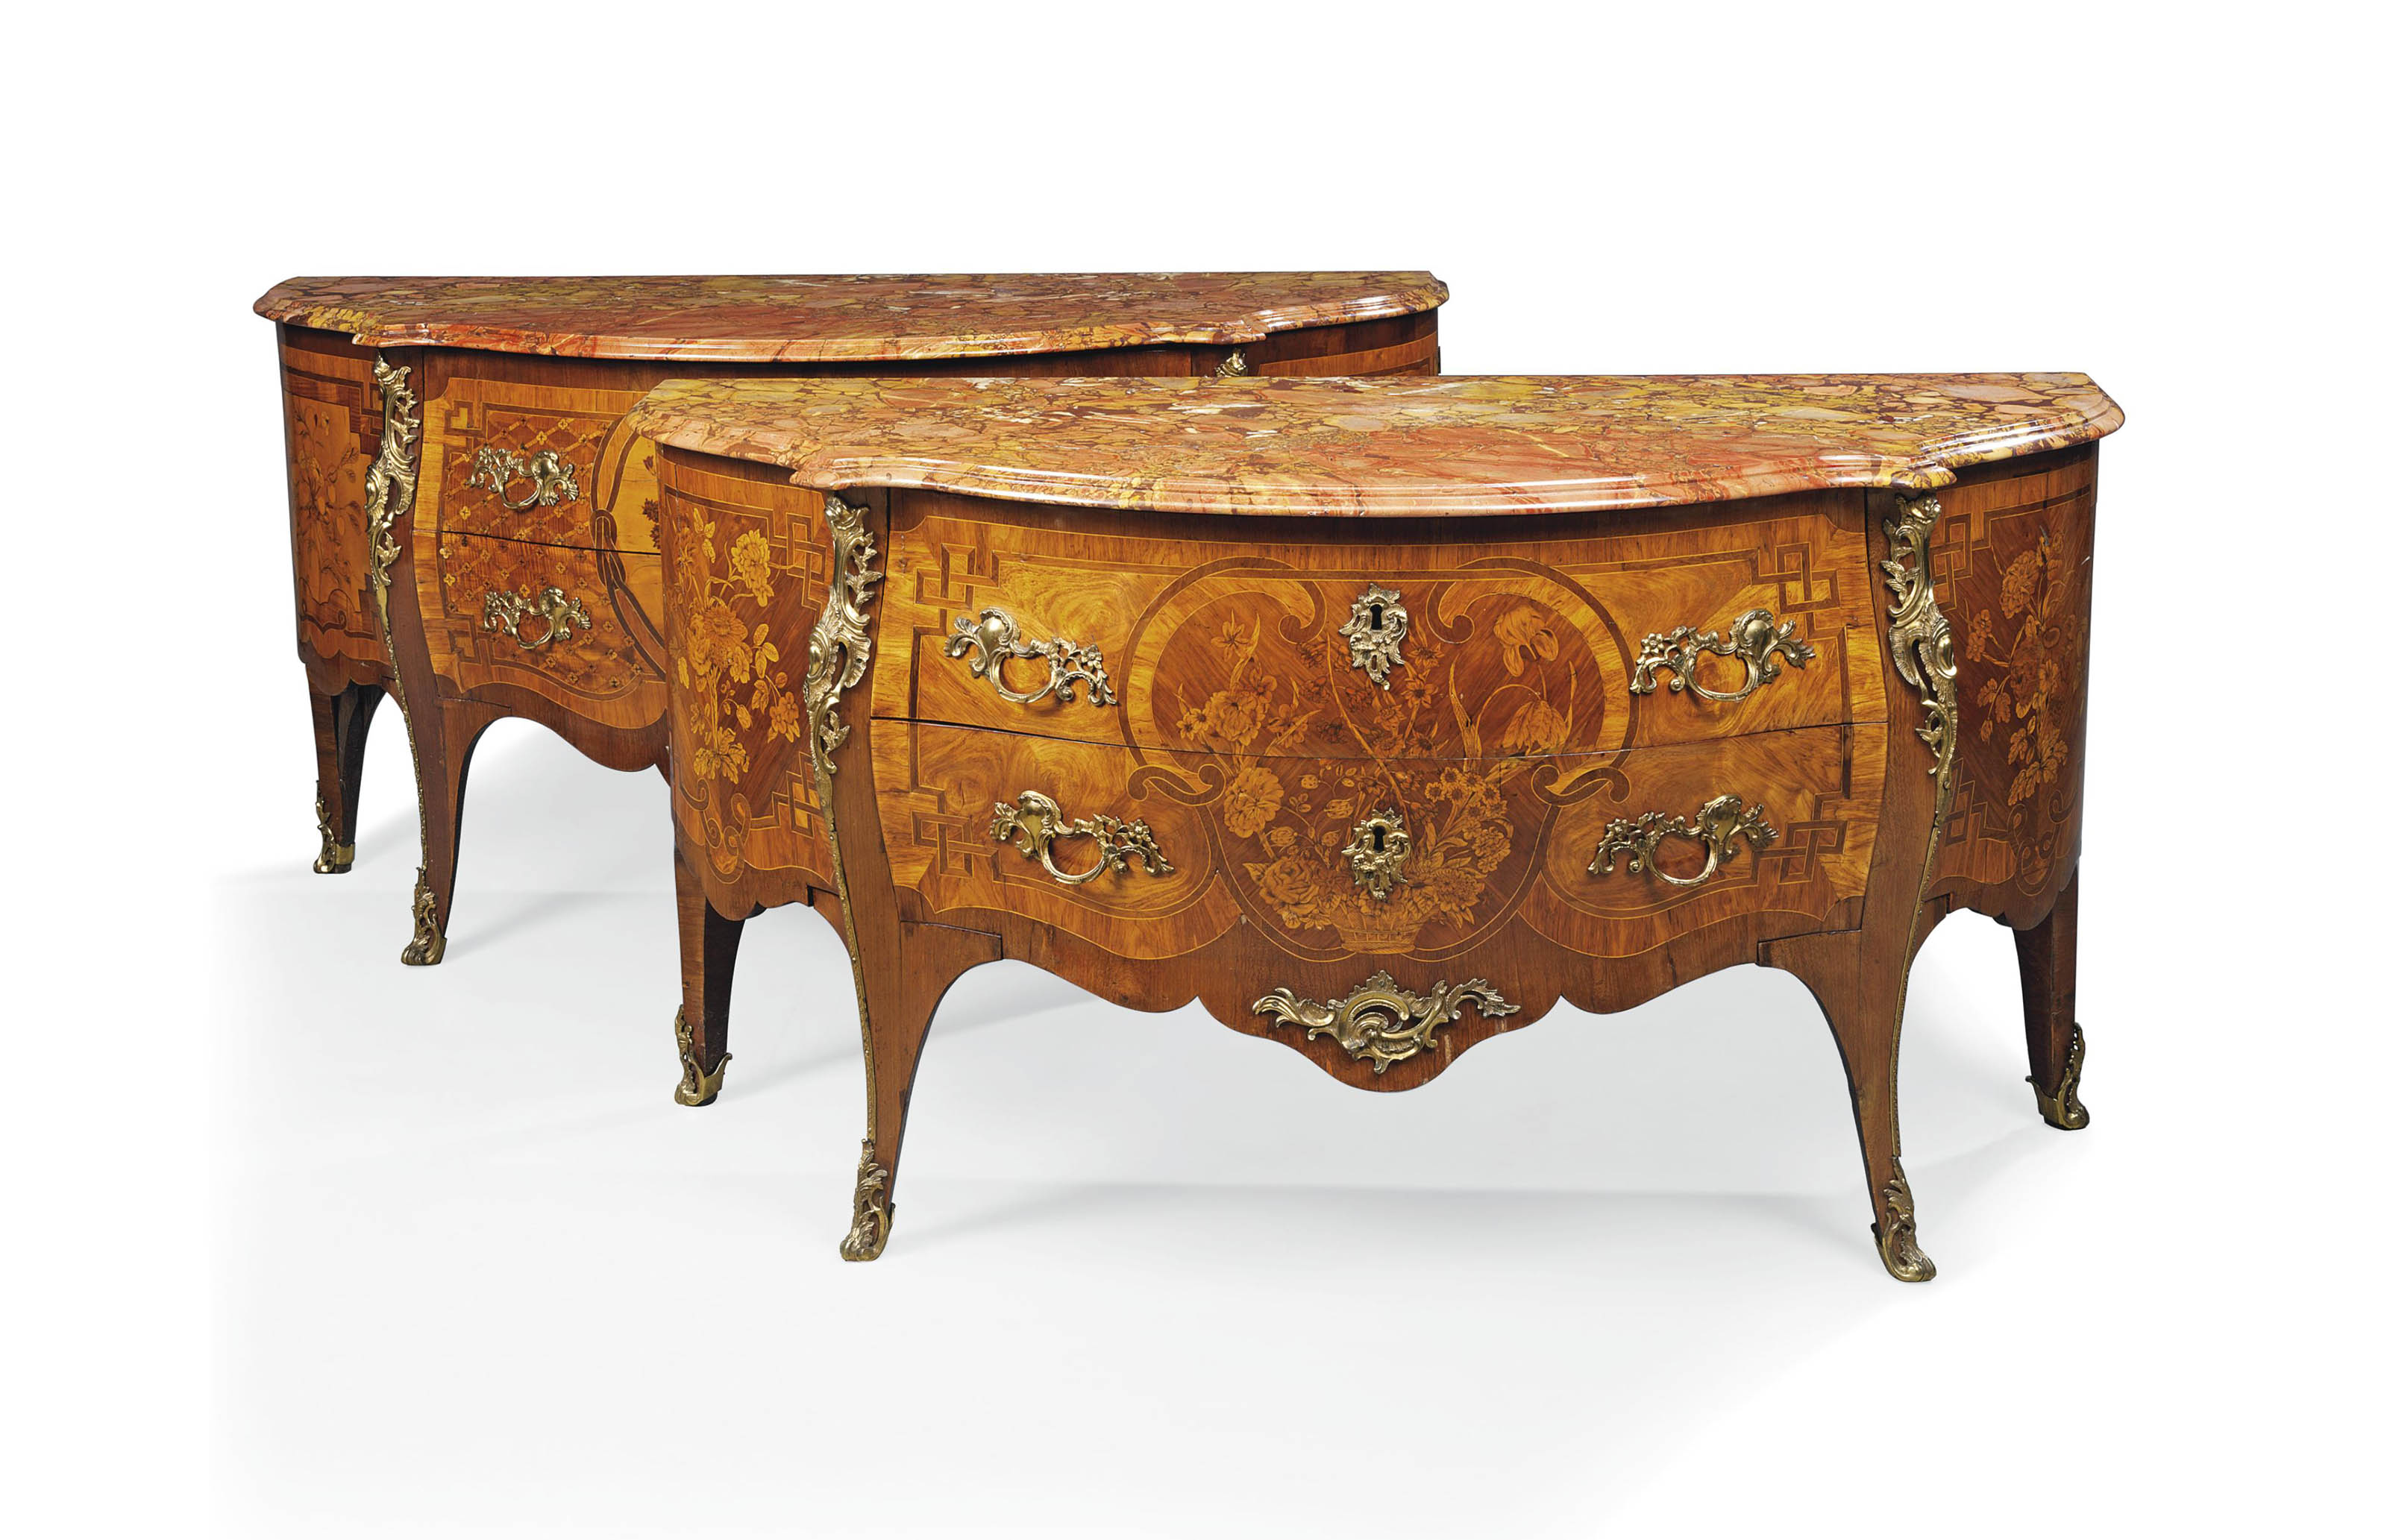 A MATCHED PAIR OF DUTCH ORMOLU-MOUNTED KINGWOOD, AMARANTH, TULIPWOOD AND MARQUETRY COMMODES